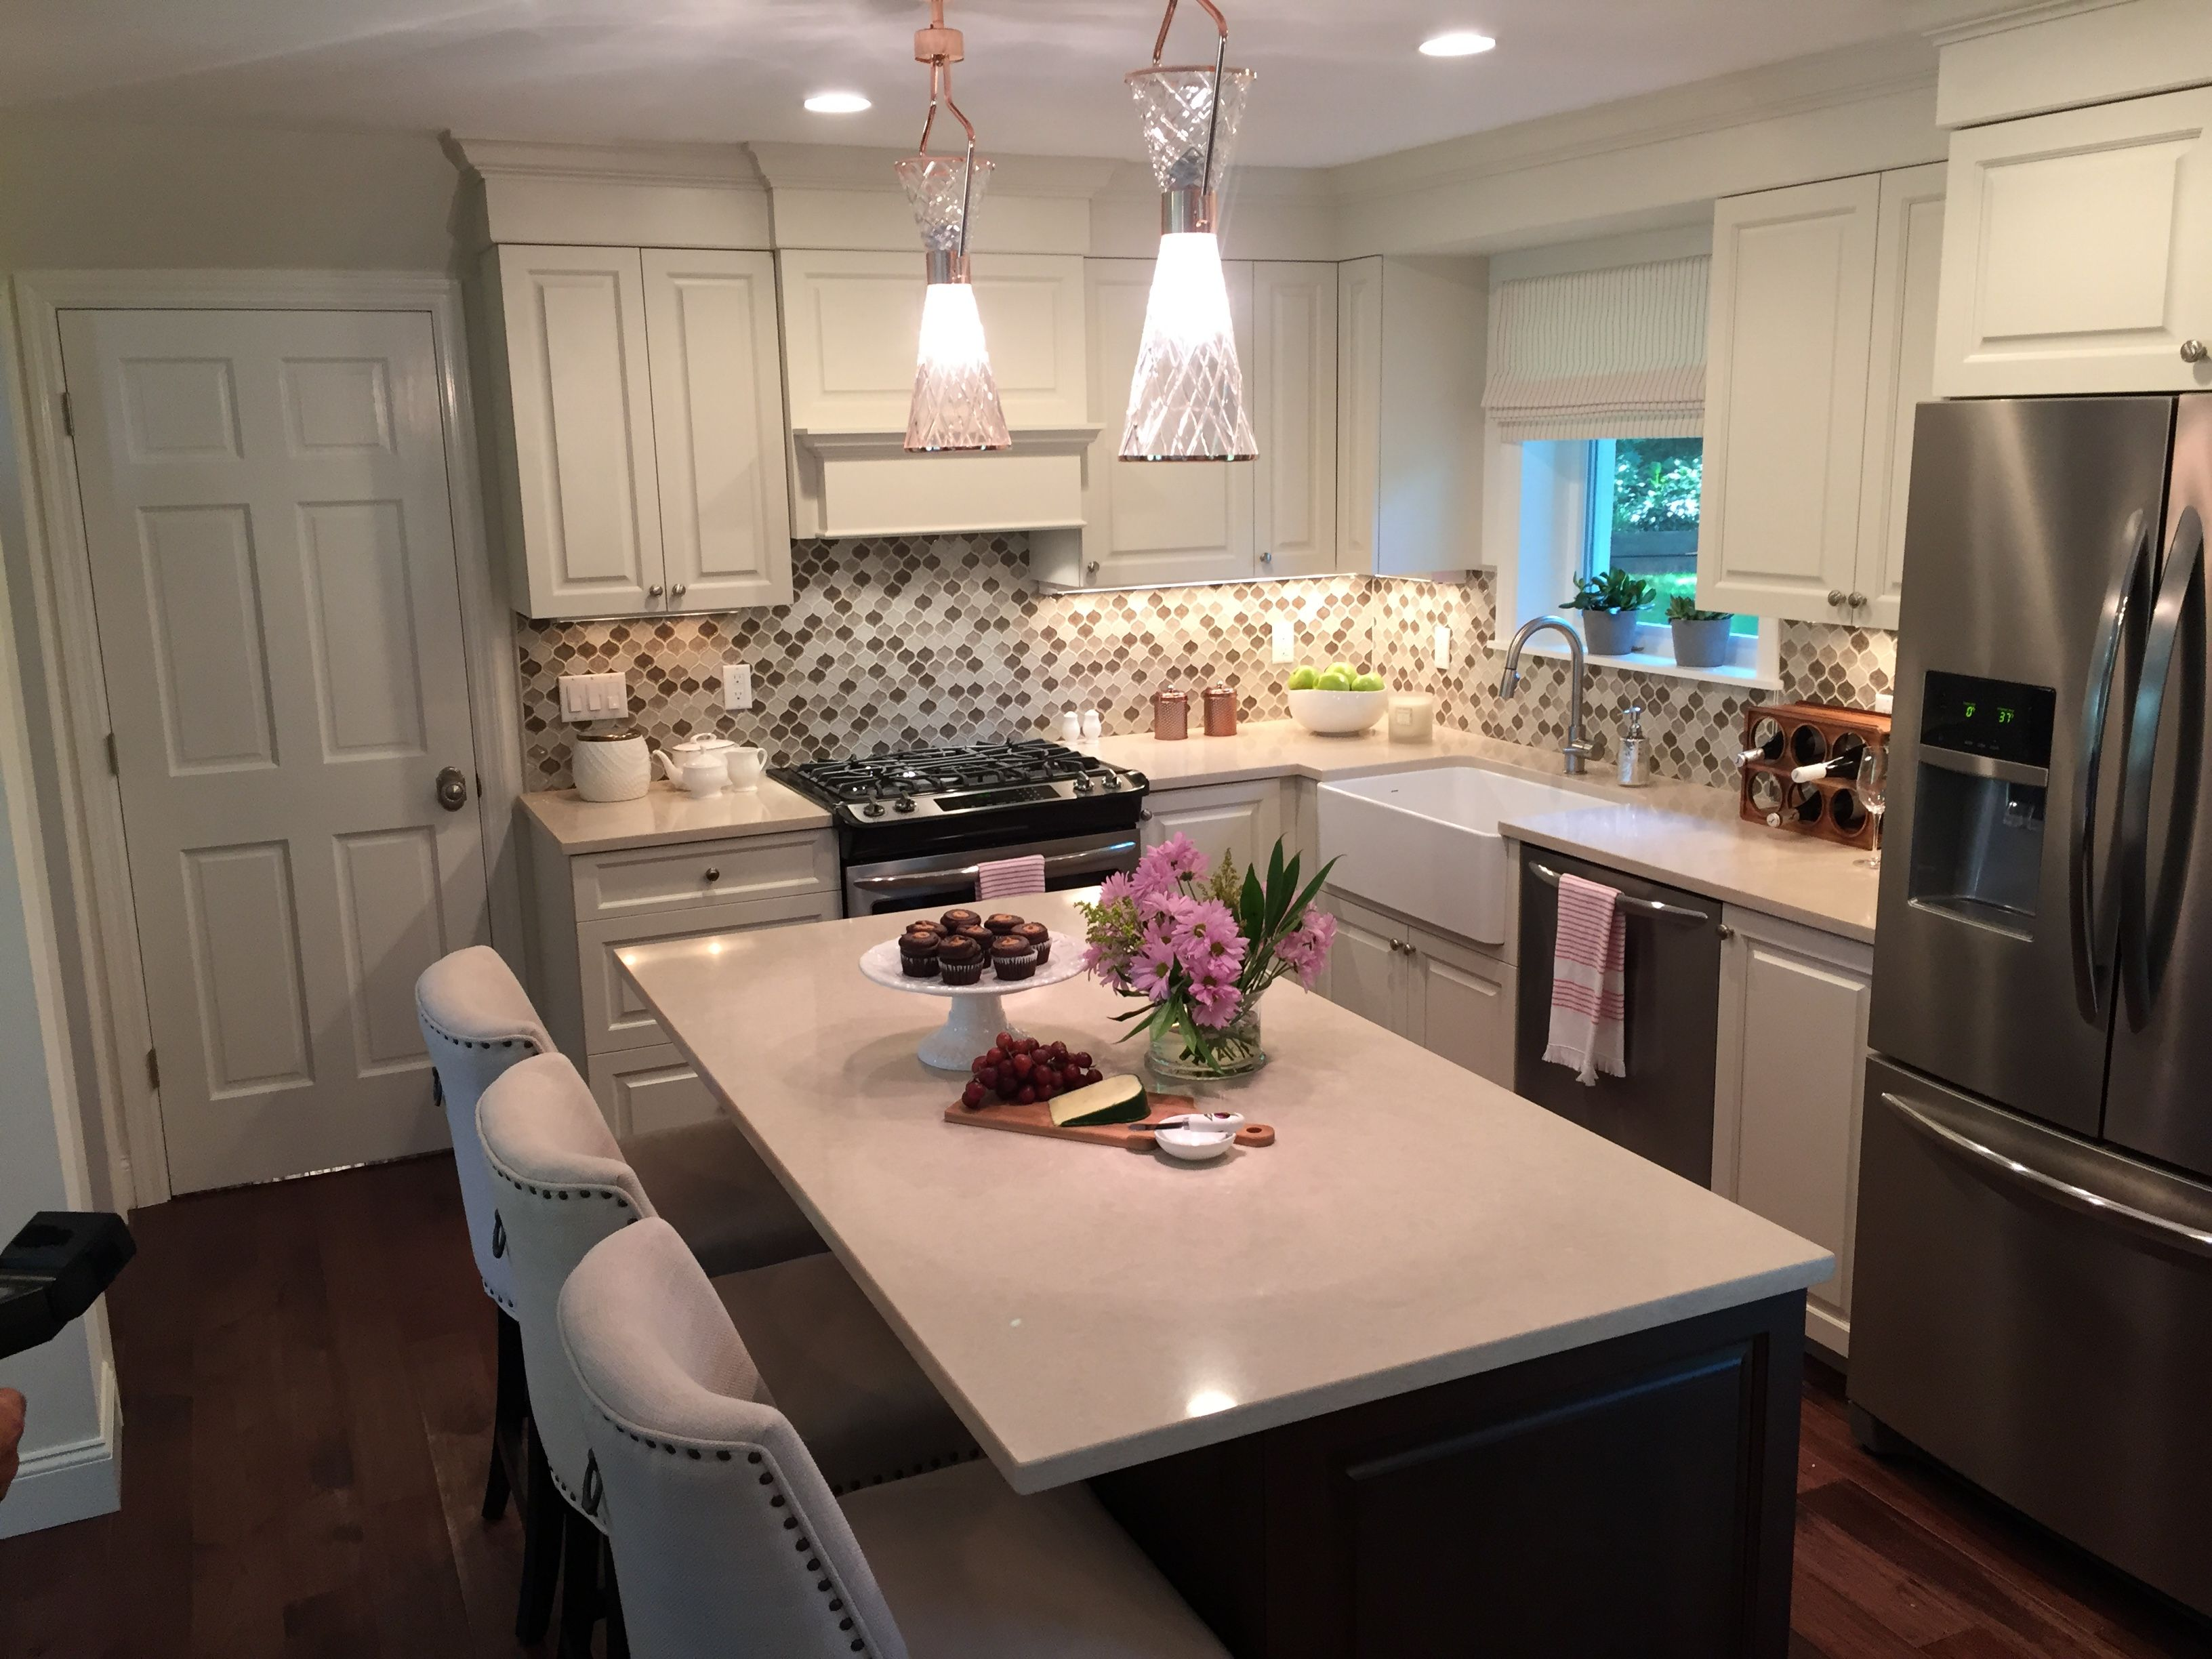 Bon Property Brothers Kitchen With Cabinet Hardware By Emtek From HGTV